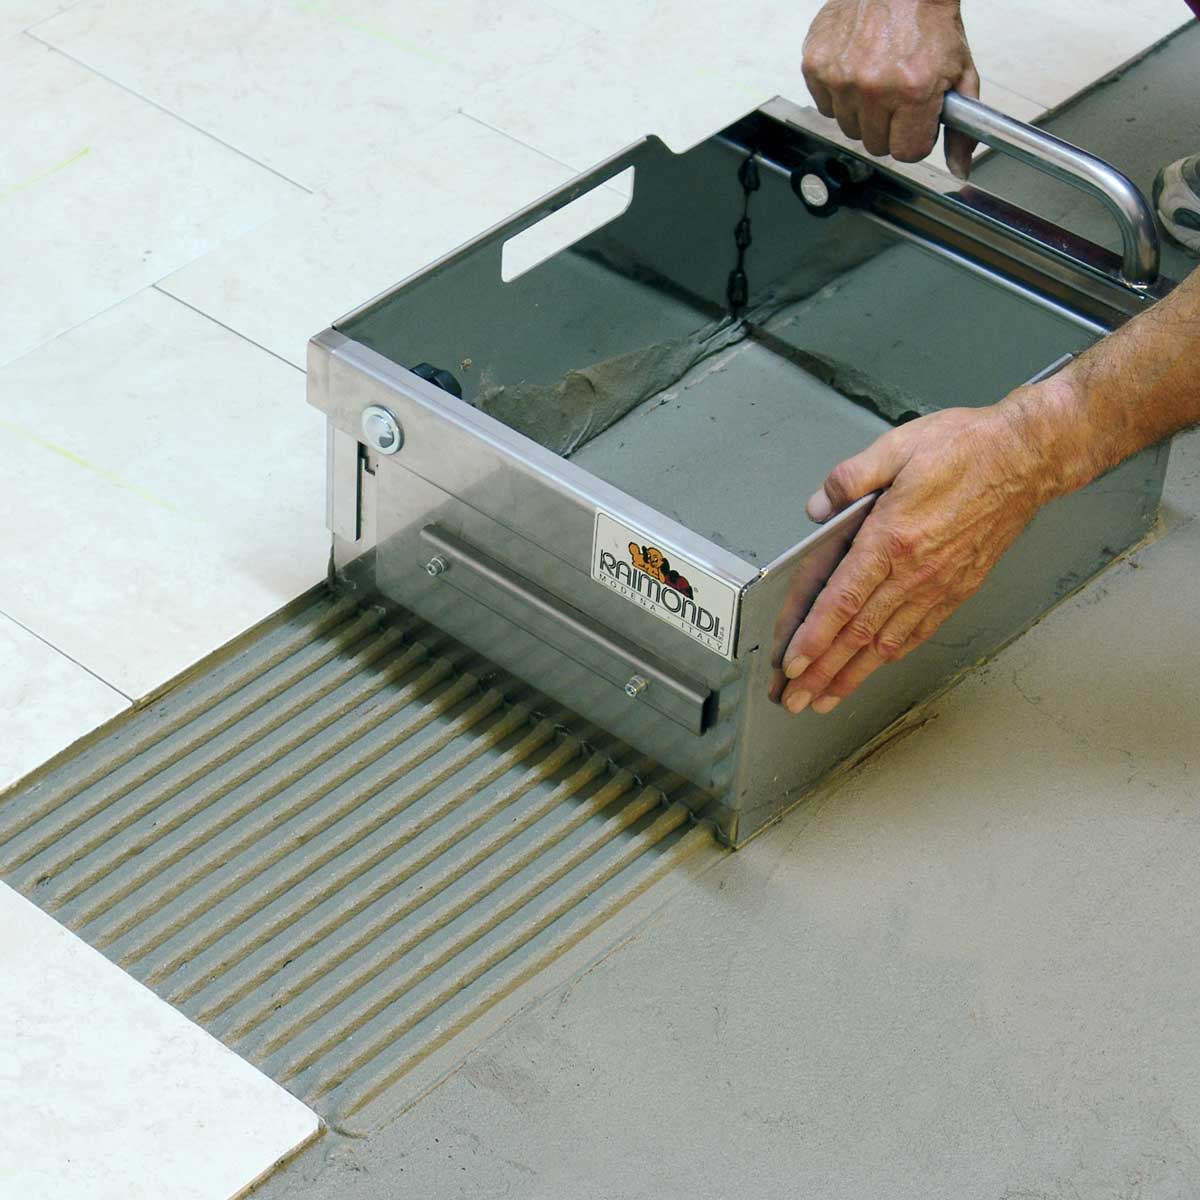 raimondi Colombo ceramic tile blade